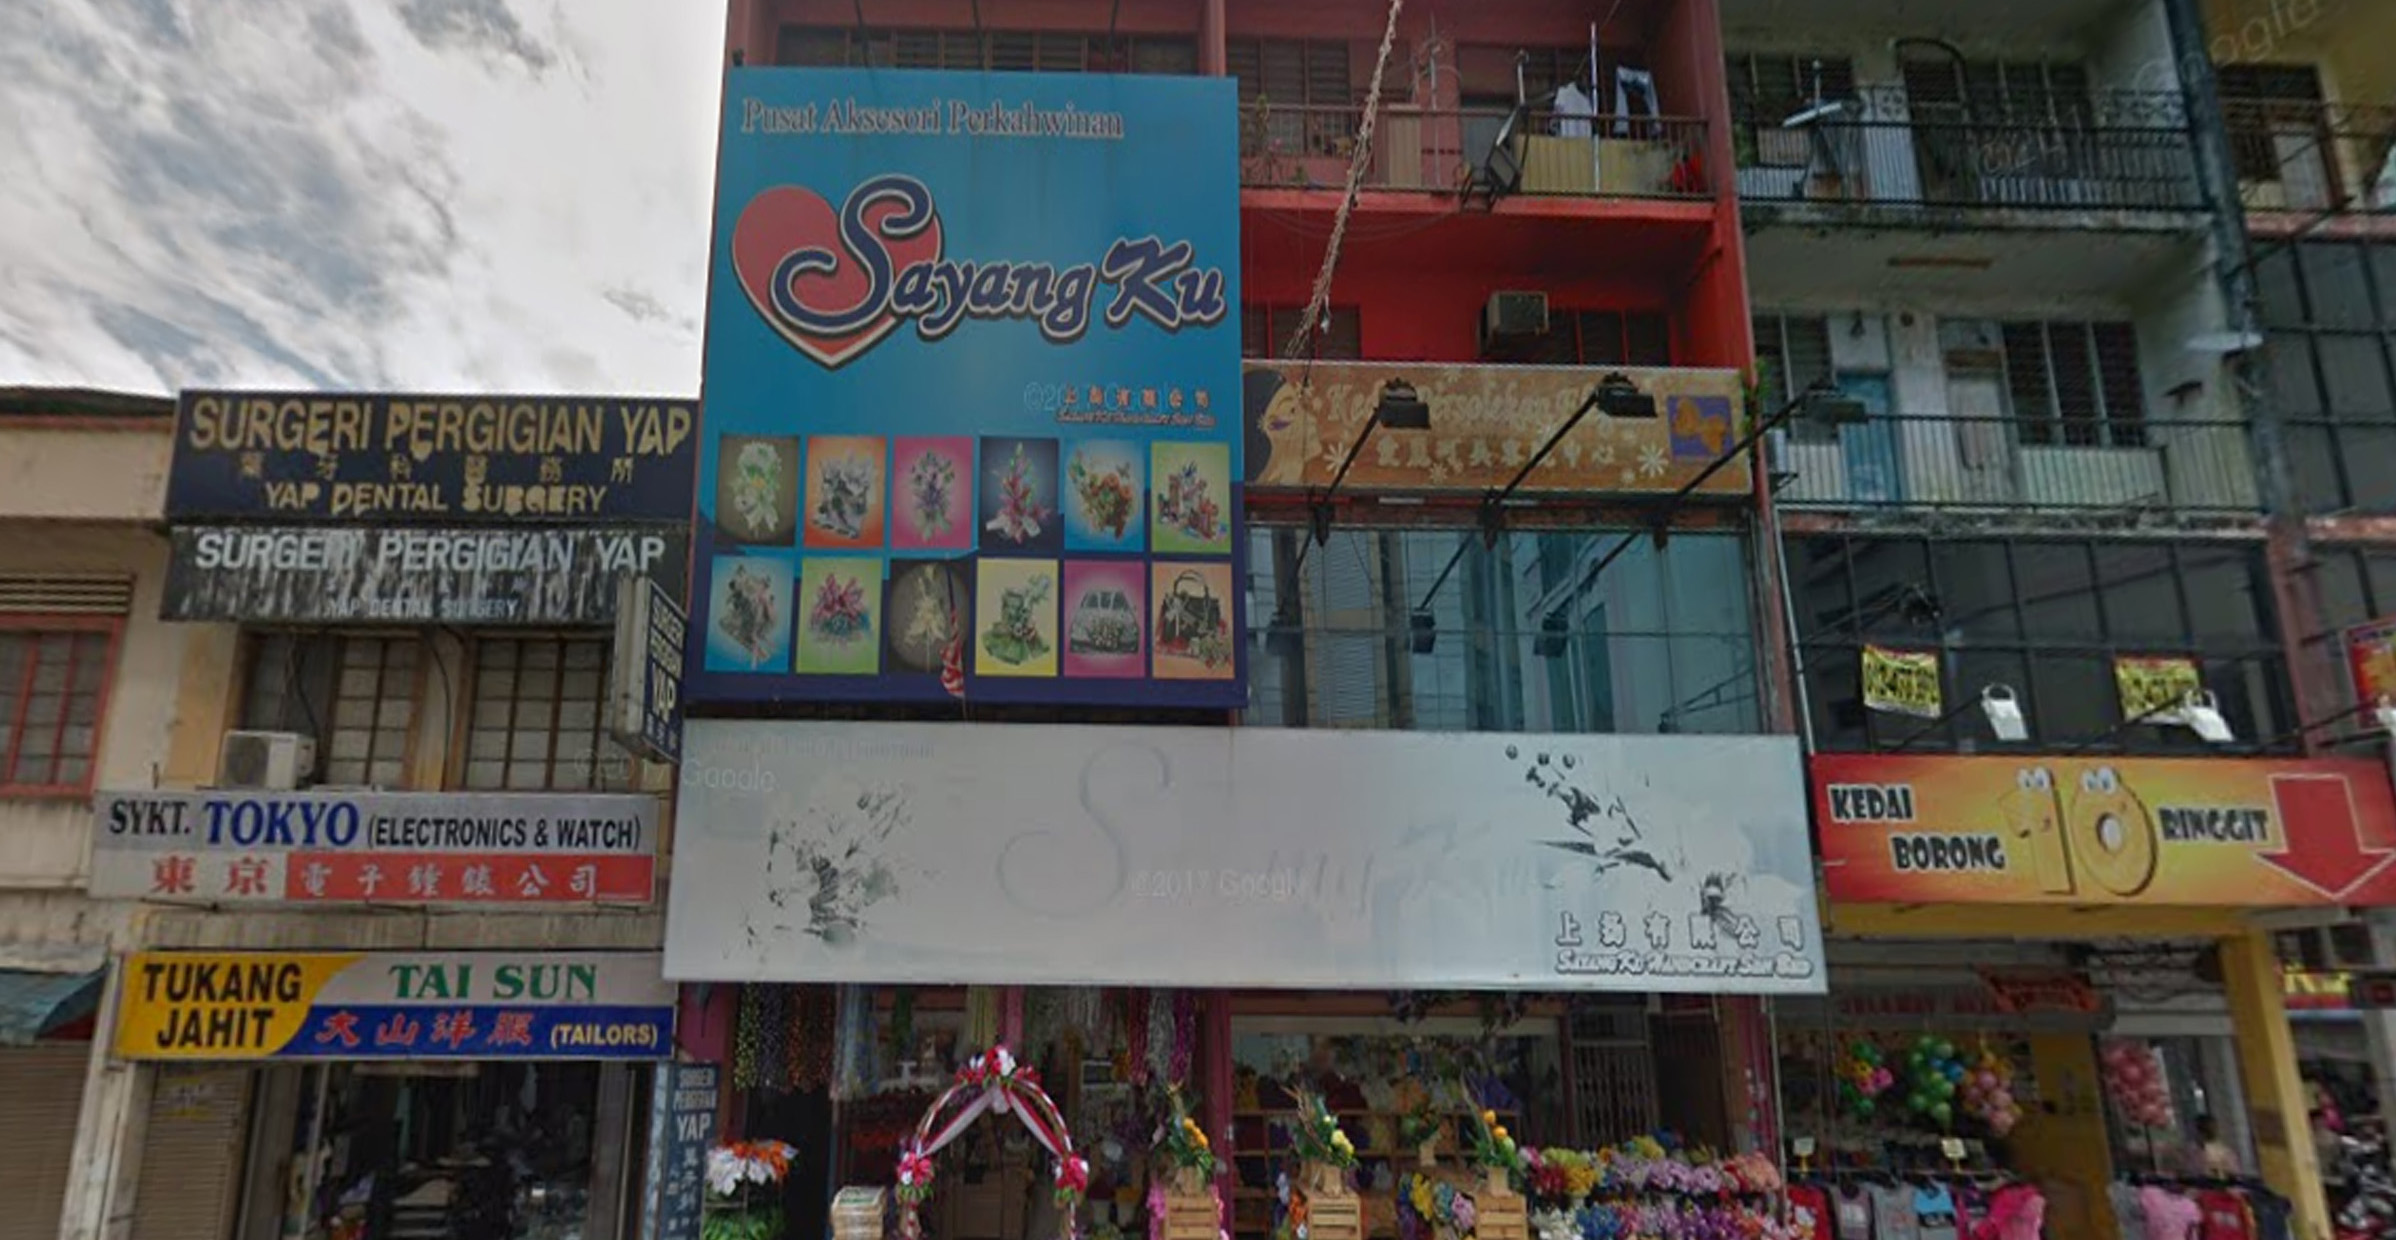 Sayangku Handcraft Online Store - The Largest Handcraft Online Store Supplier From Selangor - Sayang Ku HQ